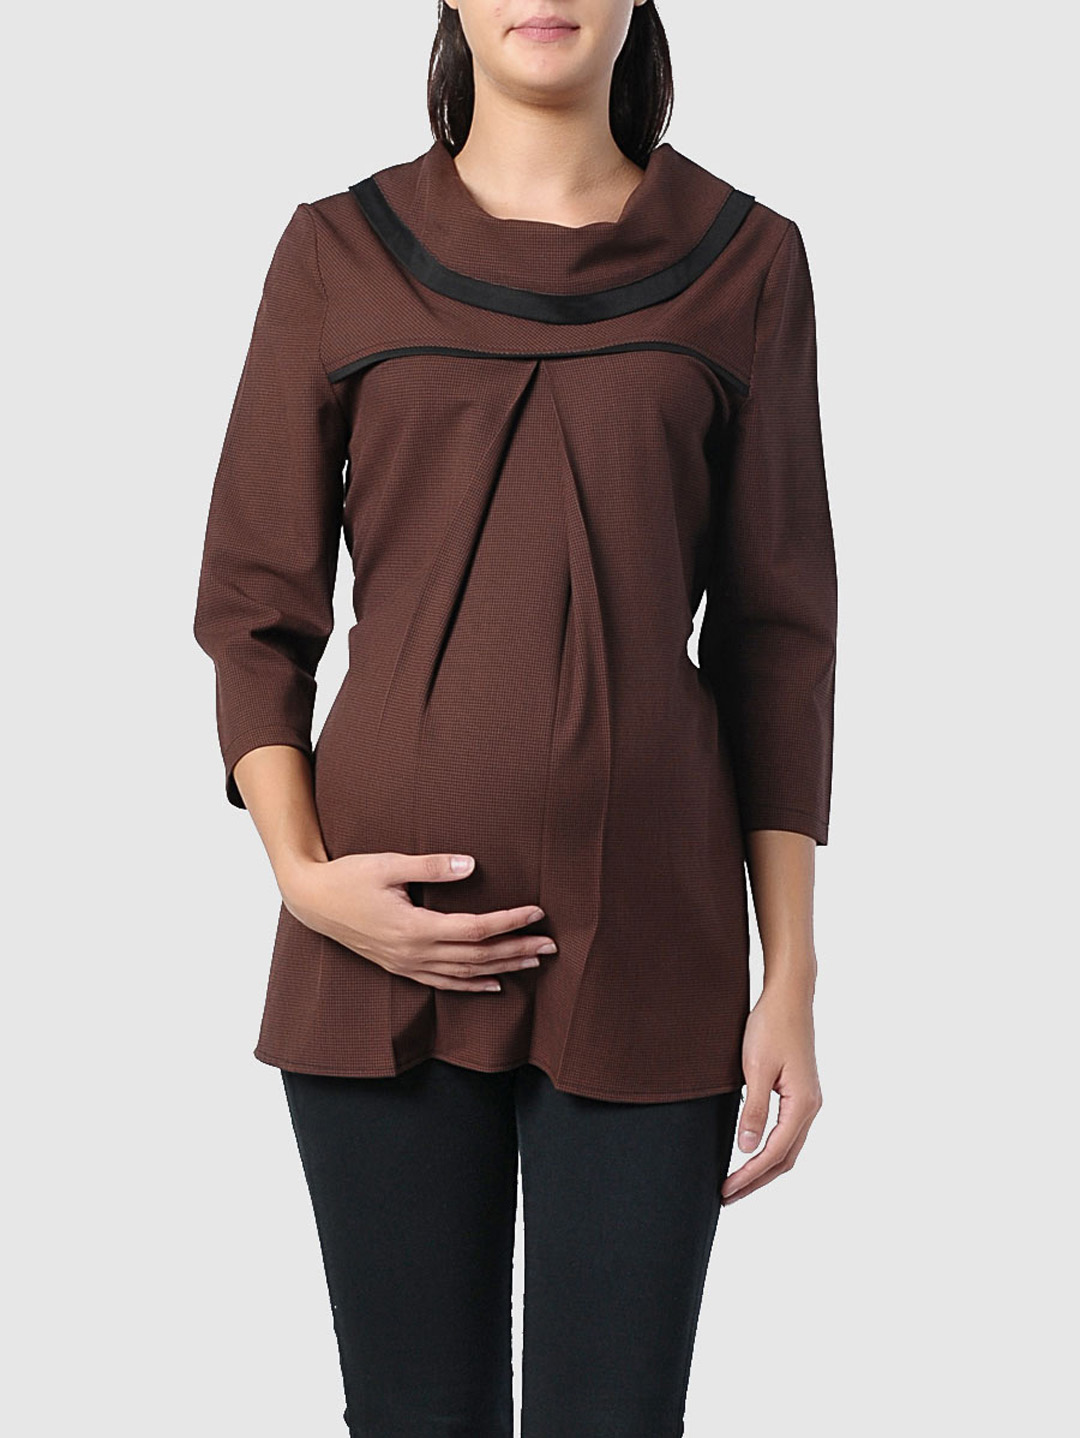 Maternity Wear Clothes Collection 2013 | Maternity Tops ...